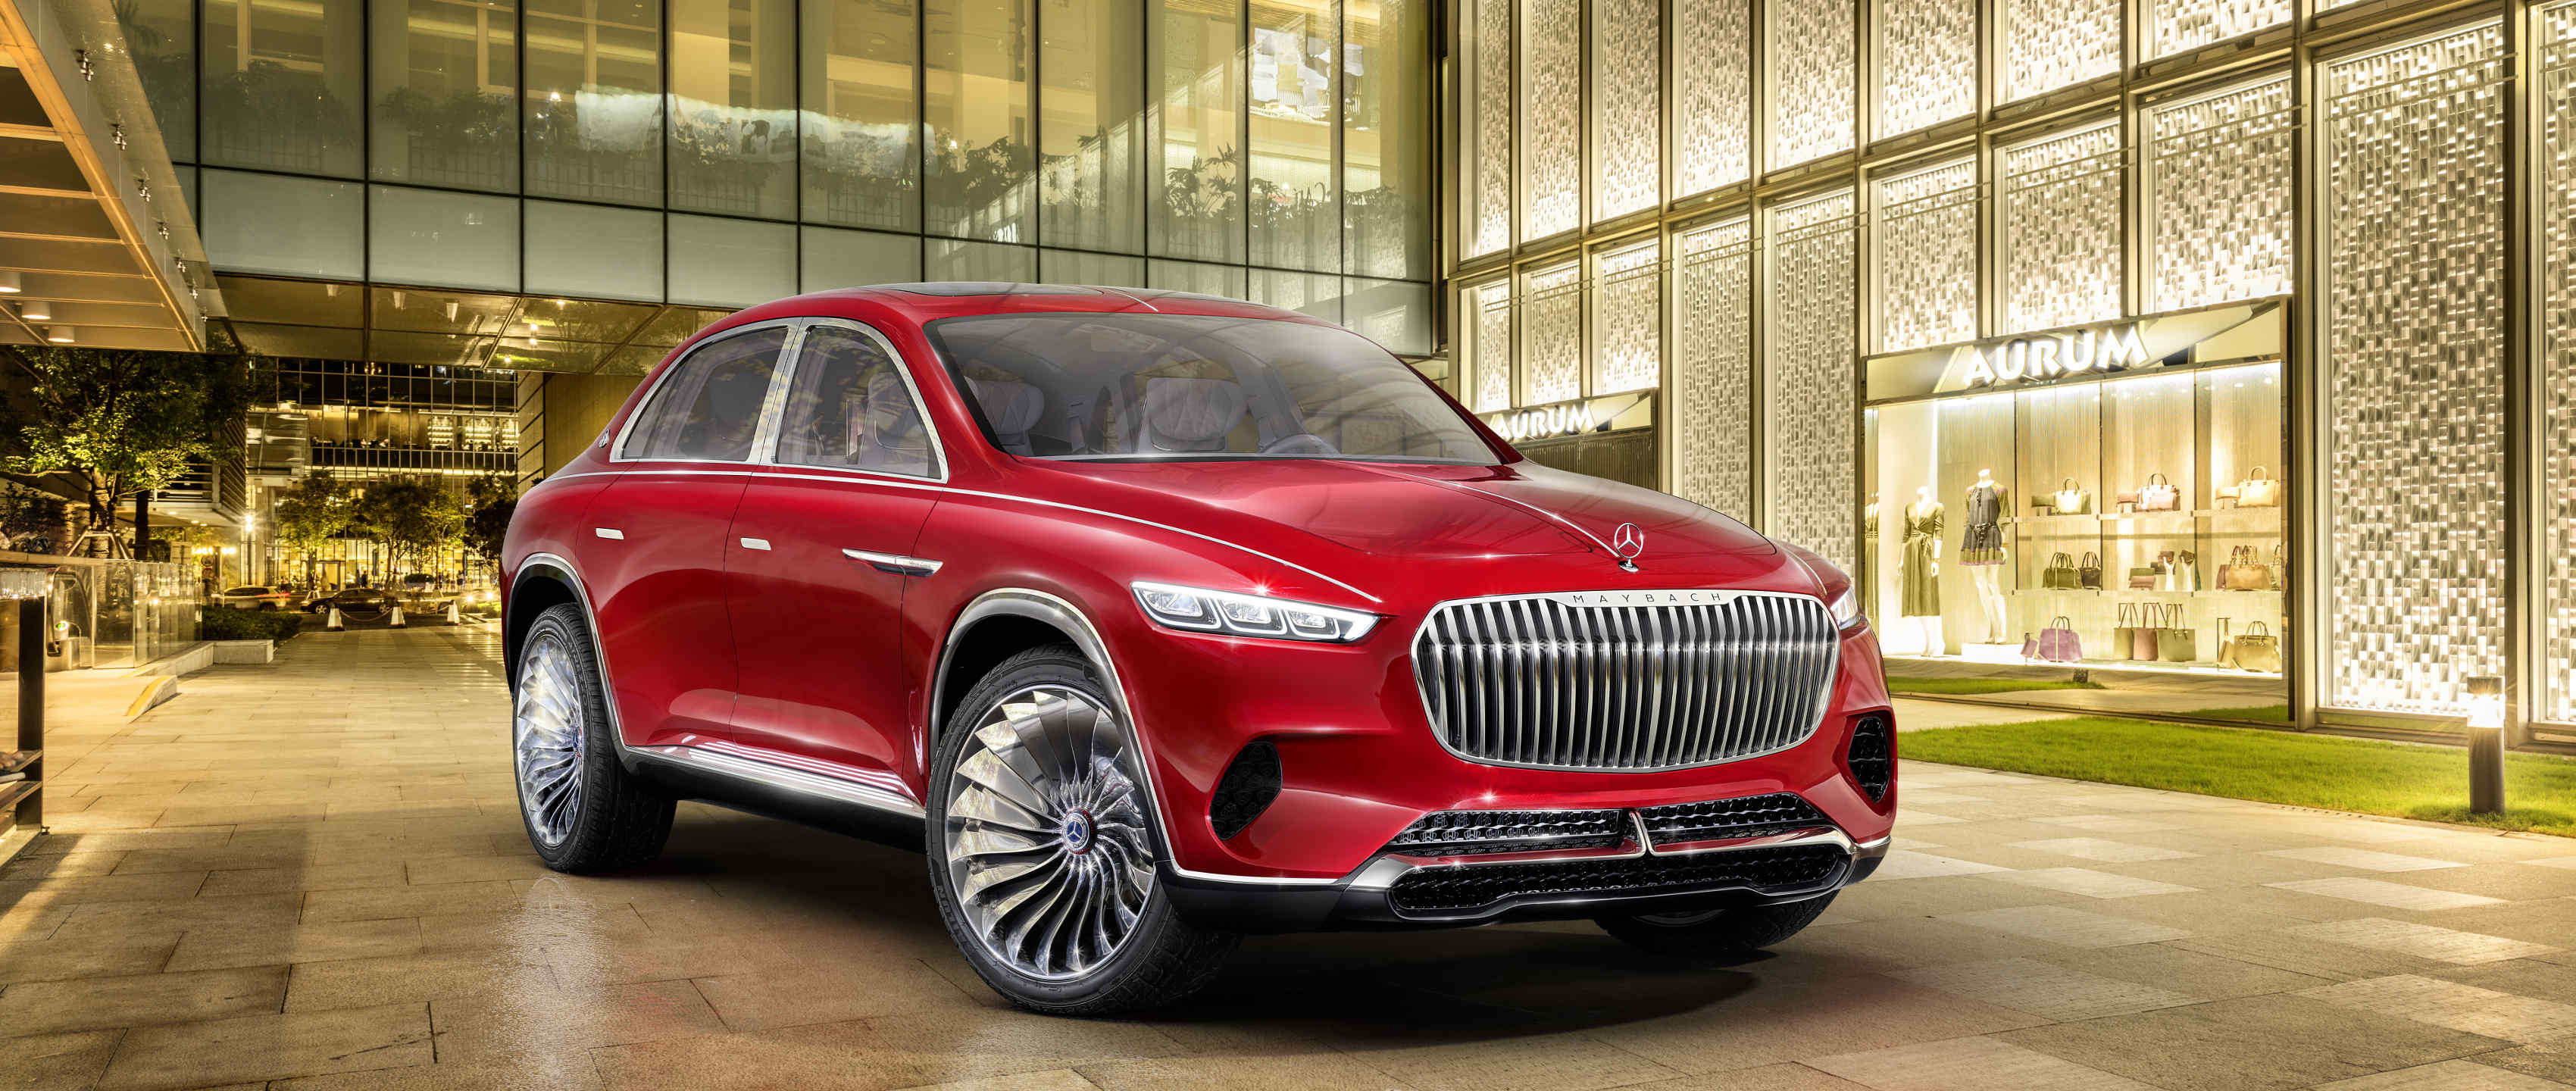 Новый автомобиль Vision Mercedes-Maybach Ultimate Luxury решетка радиатора и диски